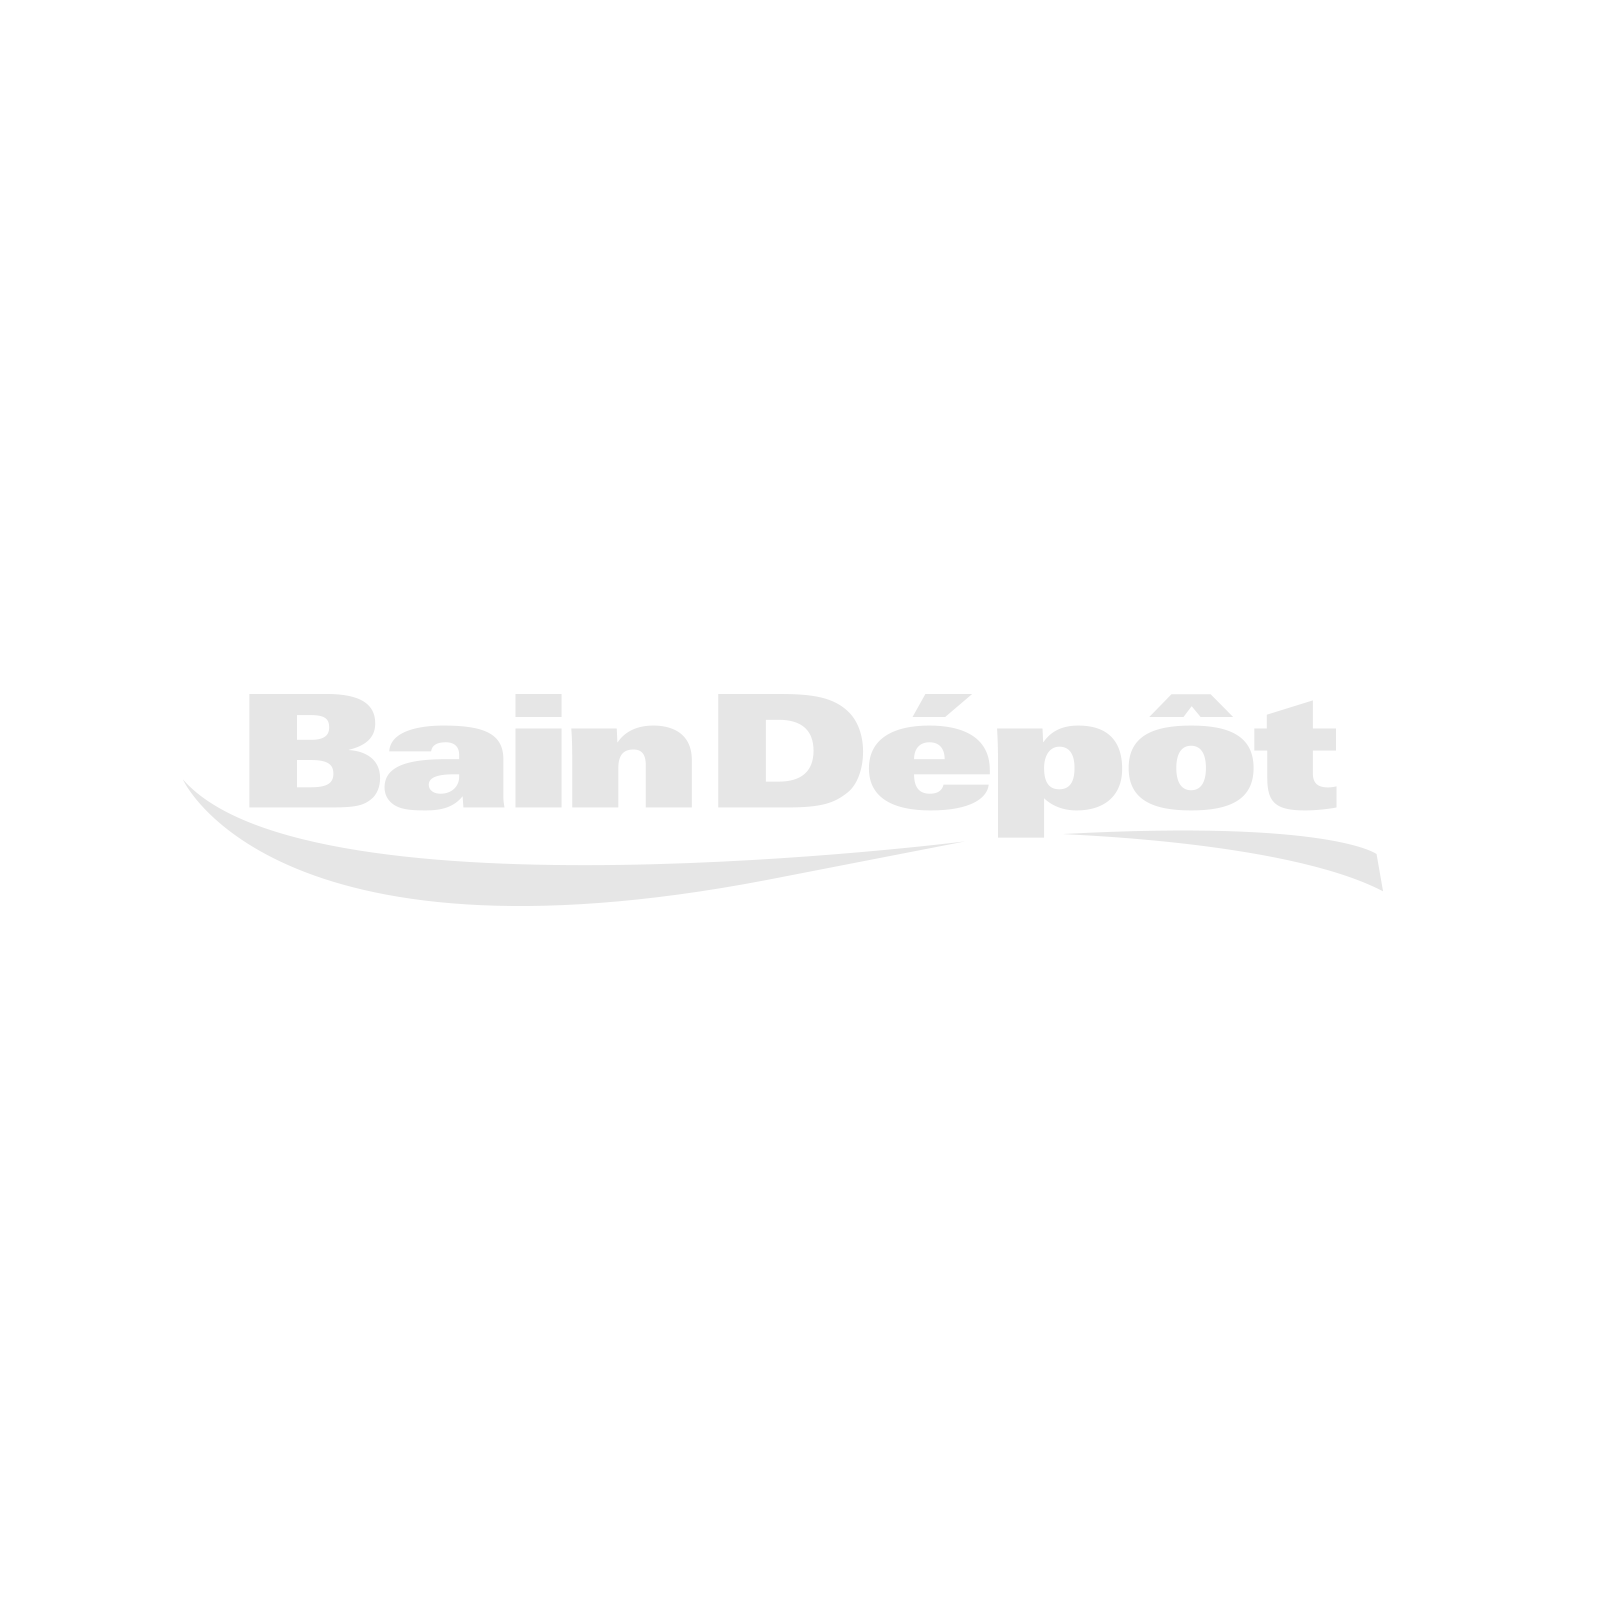 "48"" x 32"" Shower kit with opening on 48"" side and left side corner base"